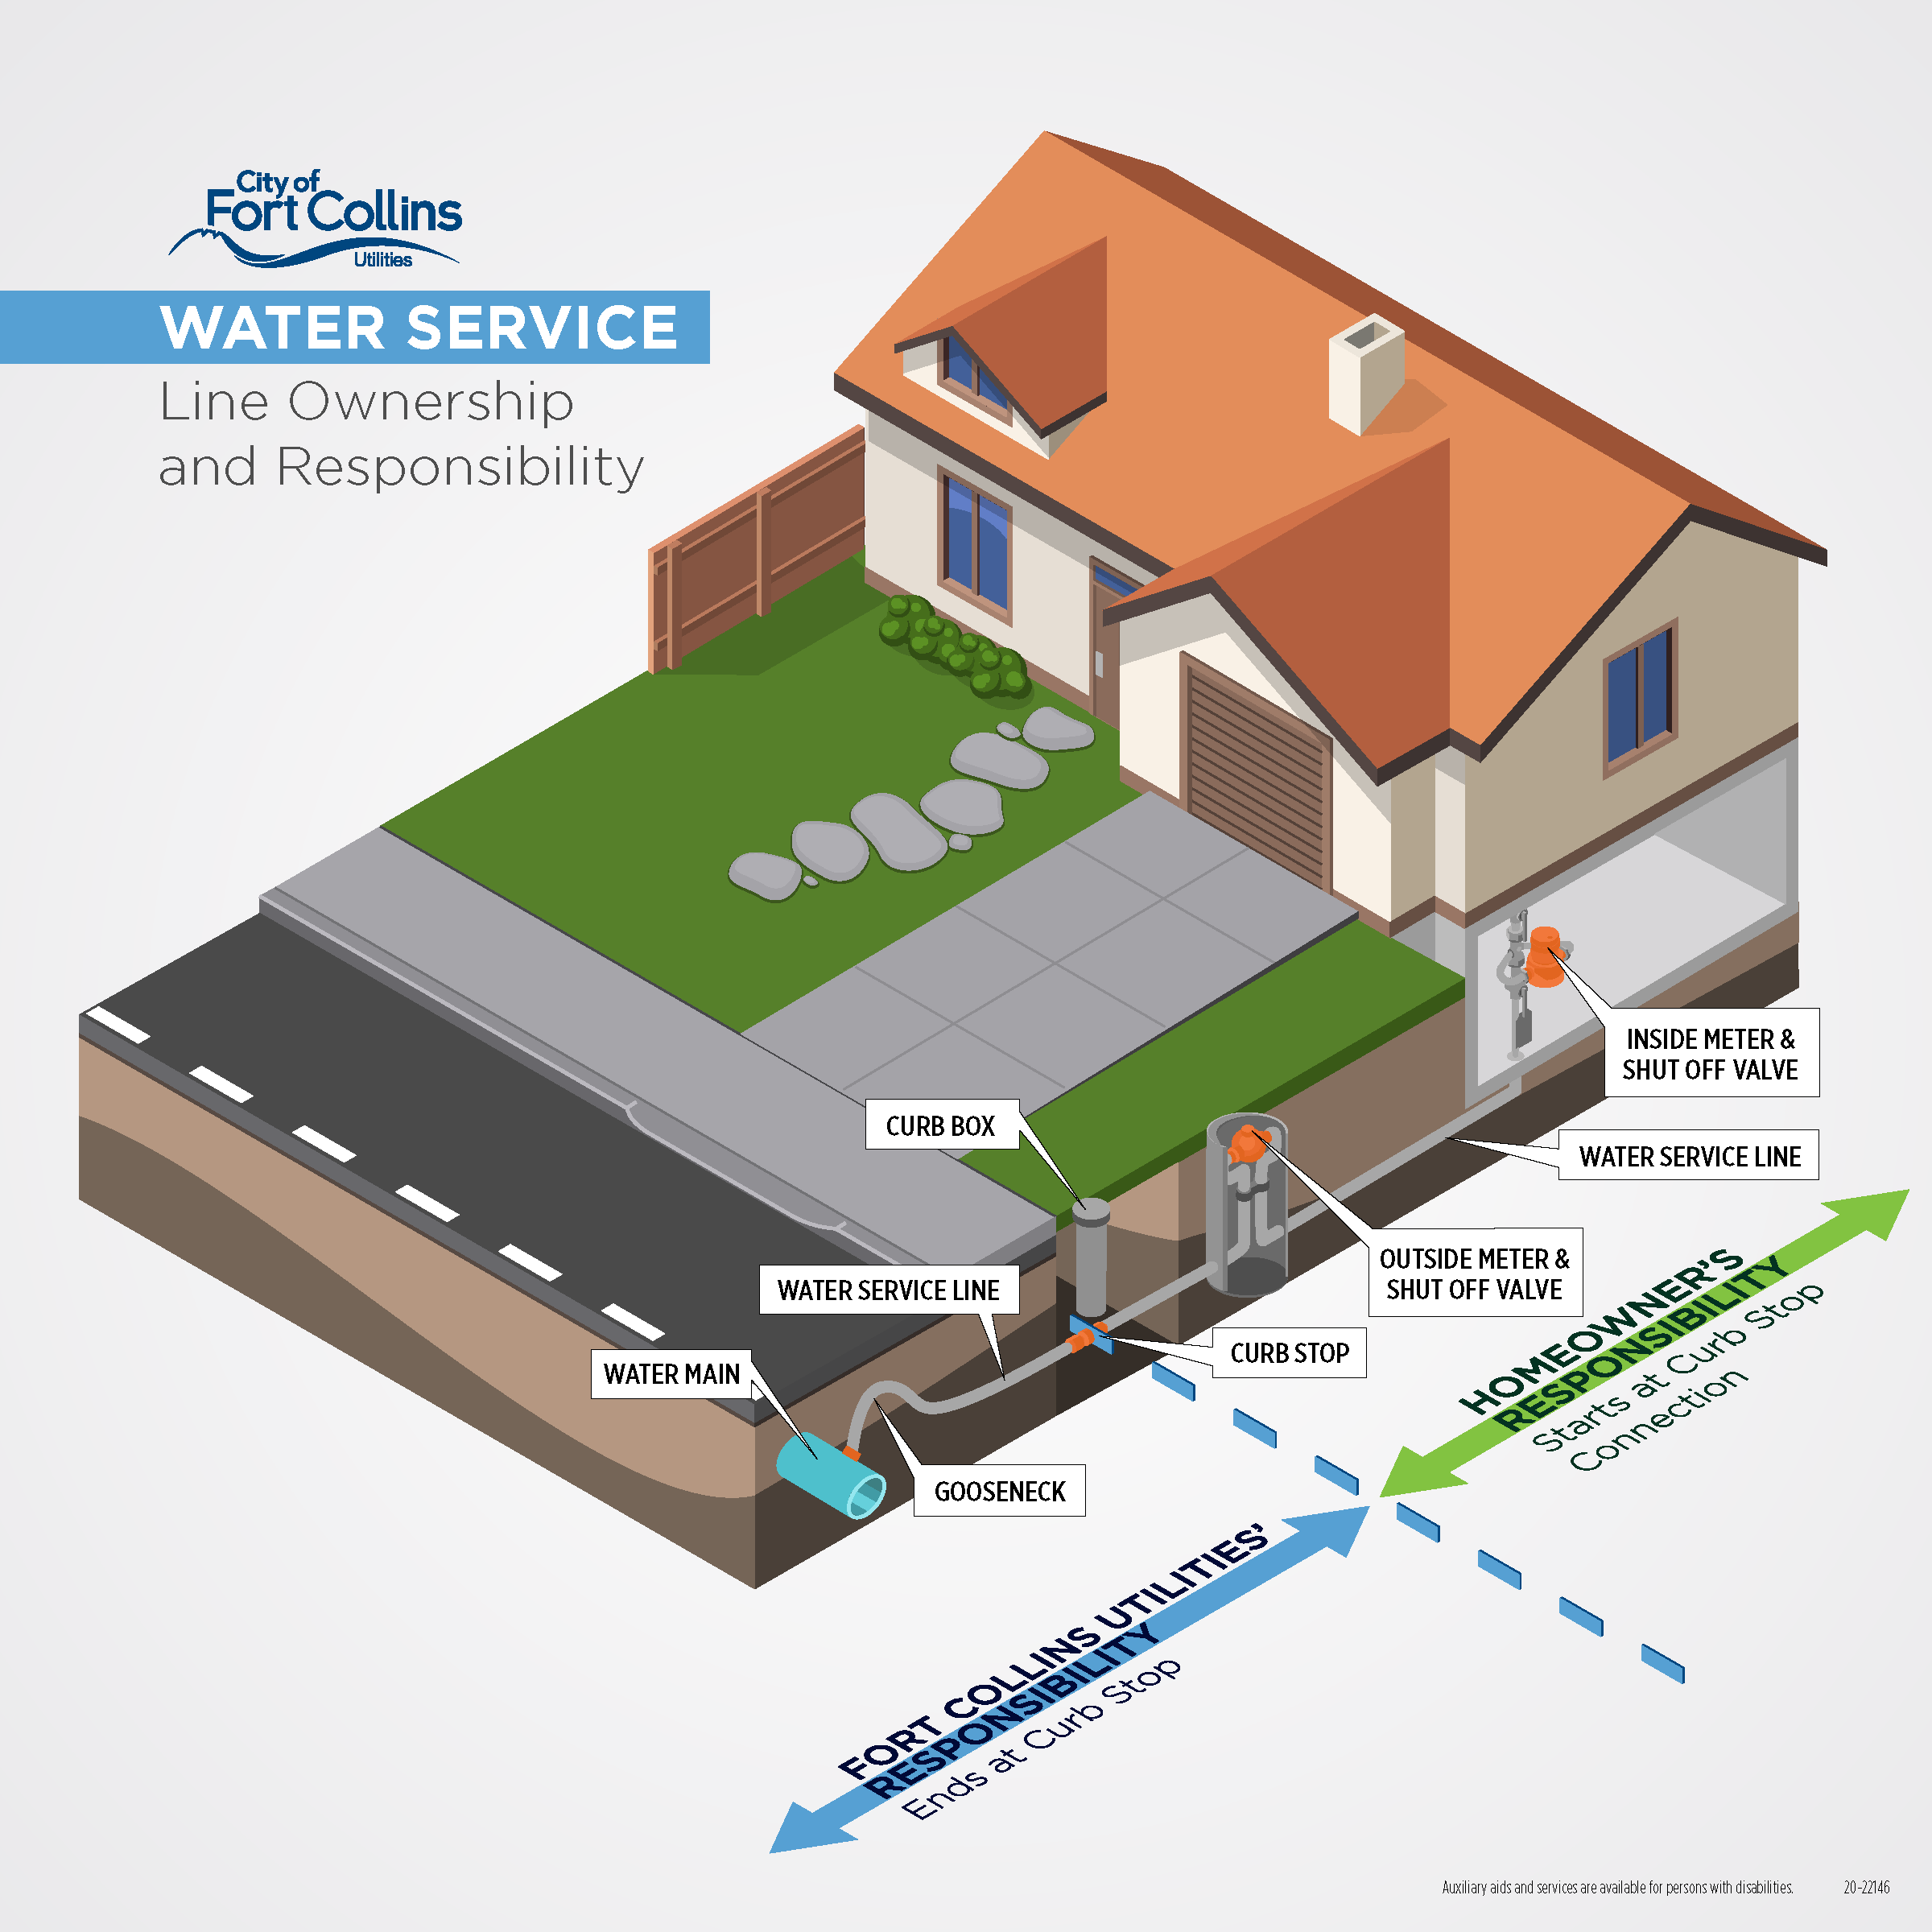 Water Service Line Ownership and Responsibility Illustration